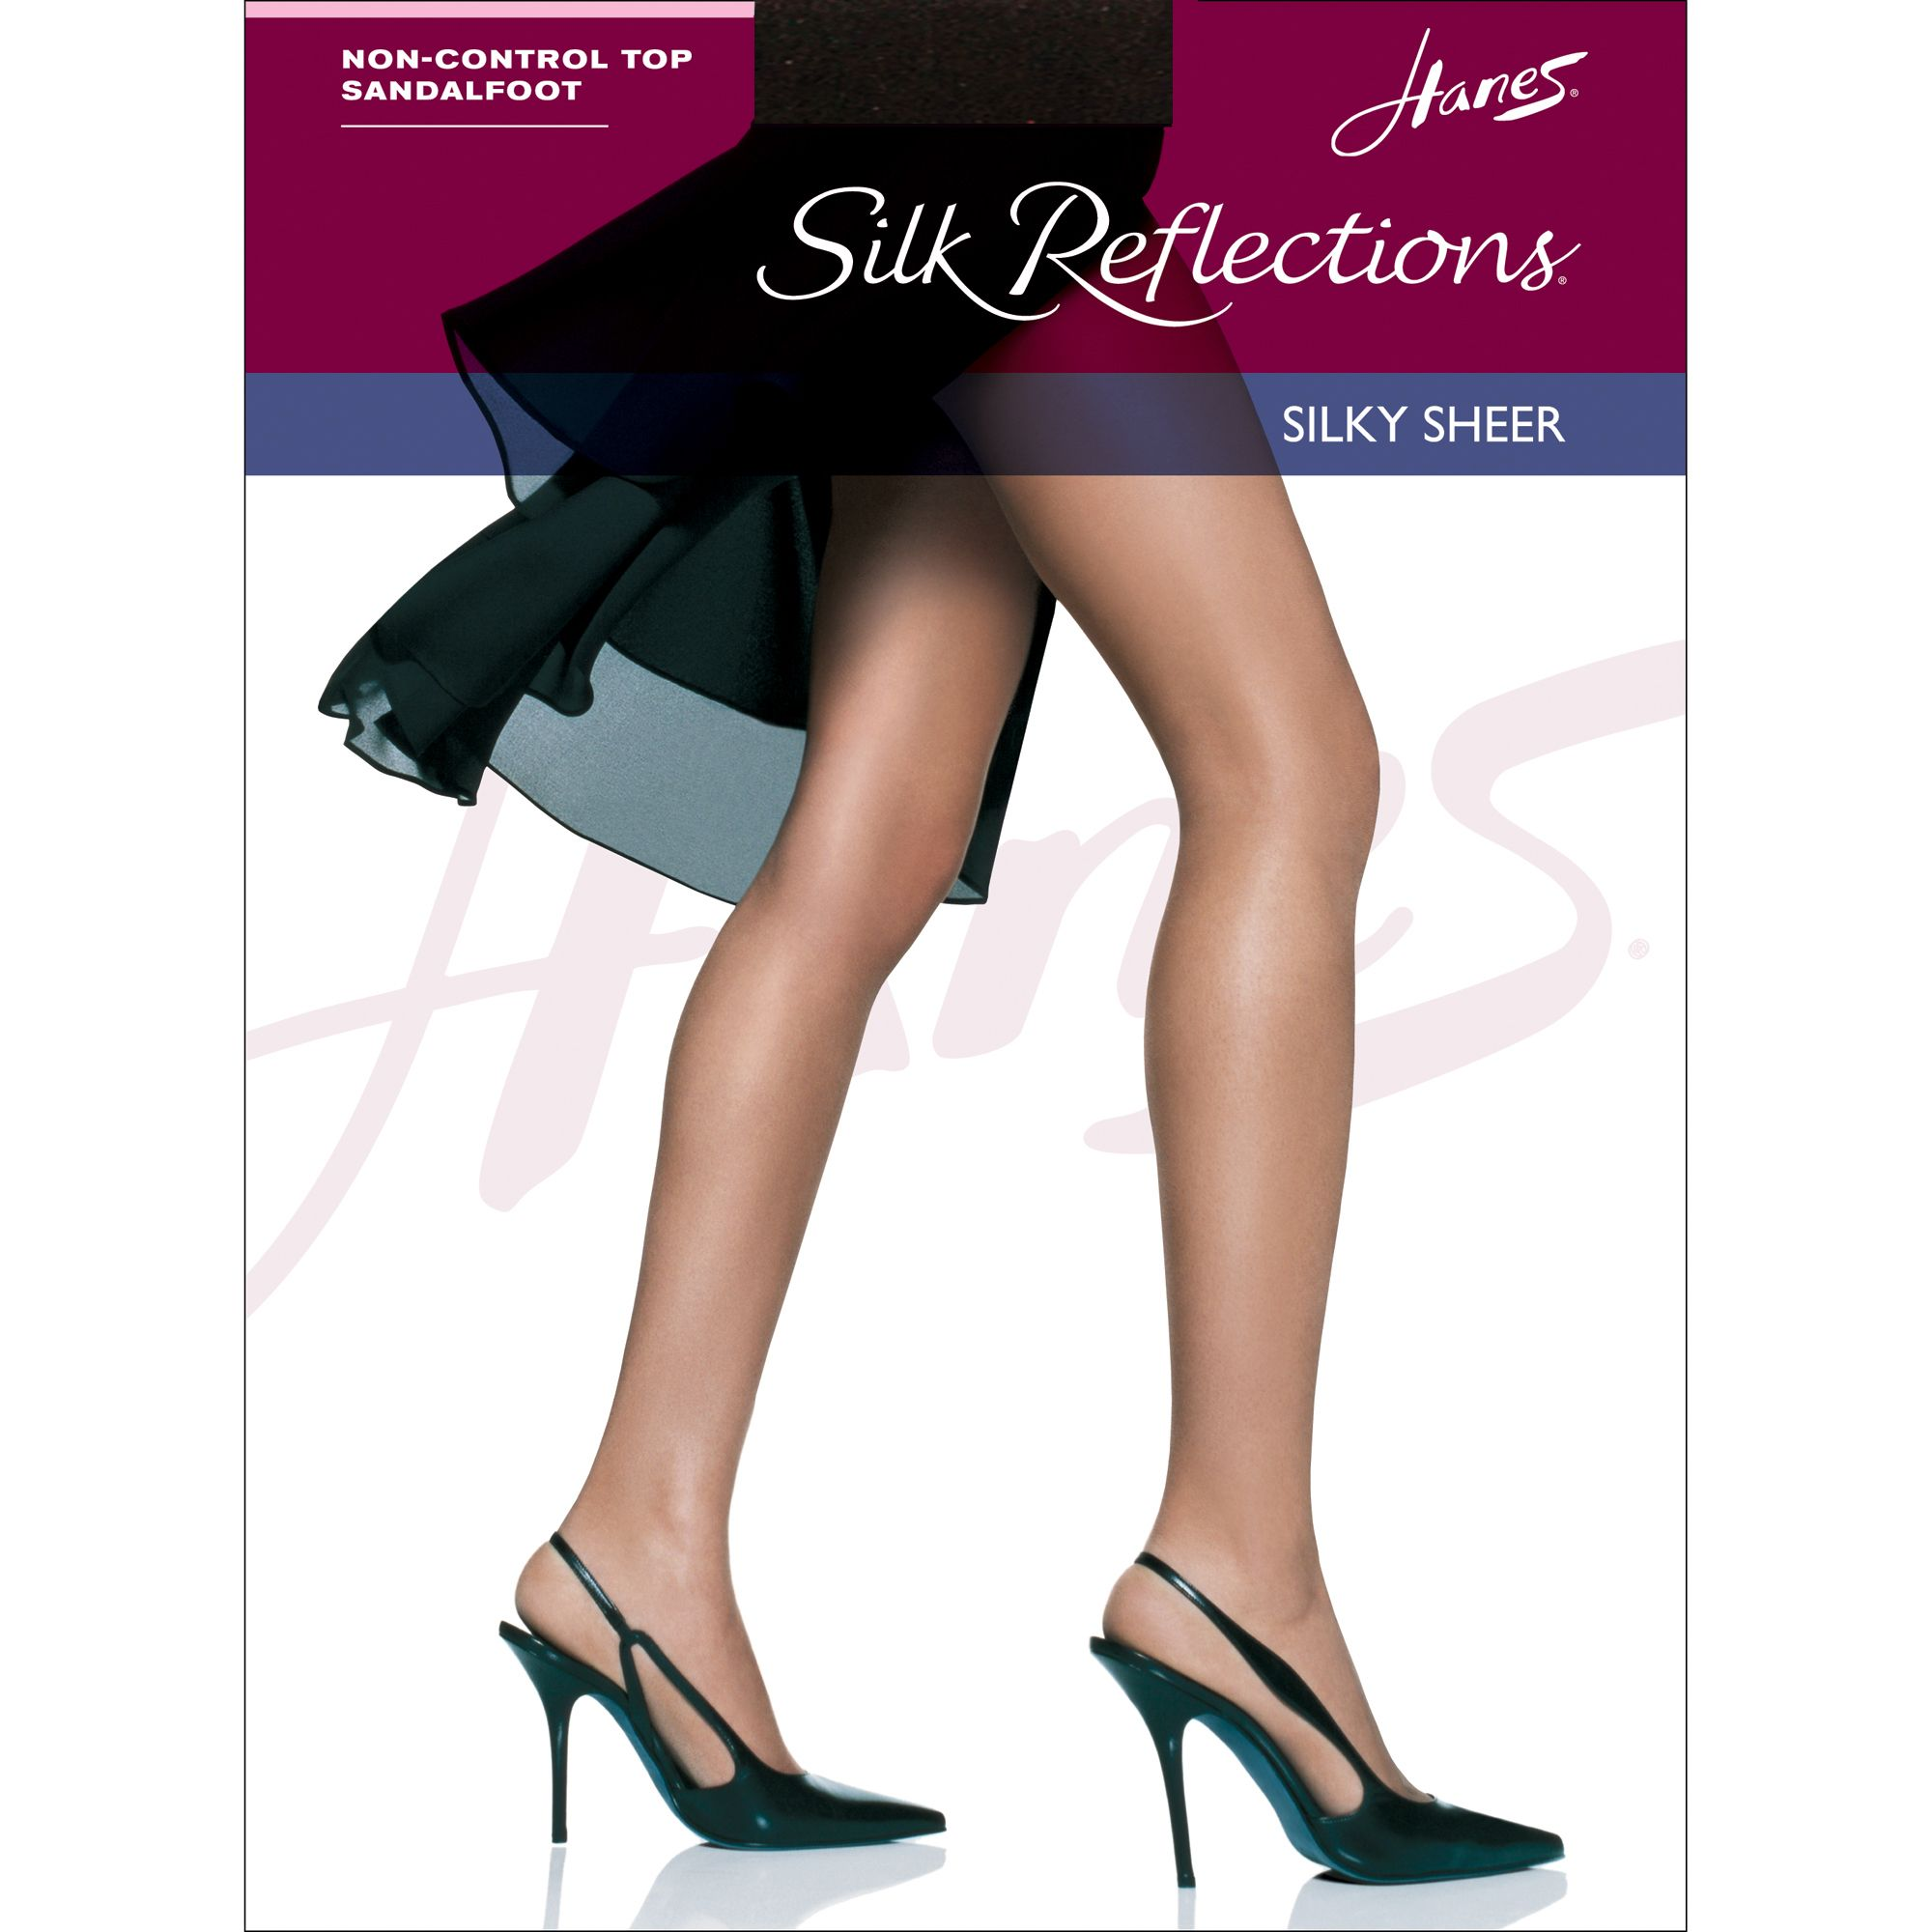 Hanes Pantyhose Silky Sheer Non Control Top Sandal Foot PartNumber: 075J2325000P MfgPartNumber: 075J2325000